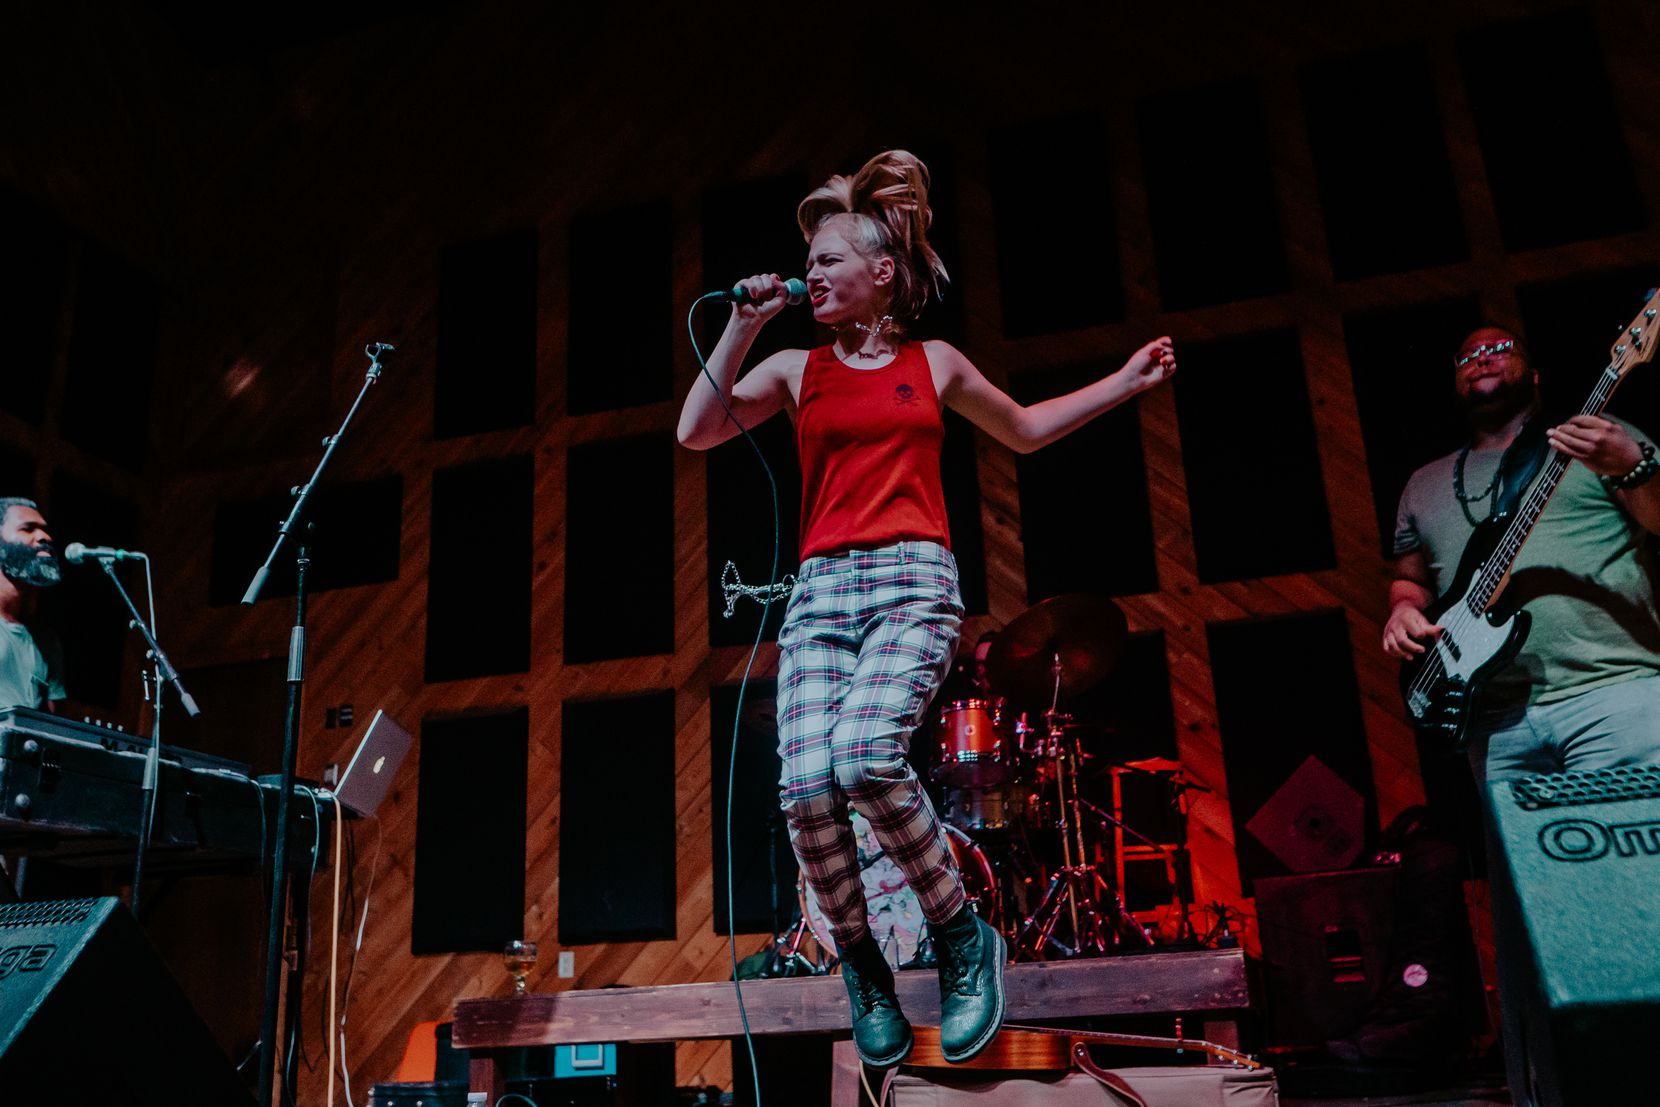 Remy Reilly performed No Doubt songs at The Rustic in Dallas last summer.